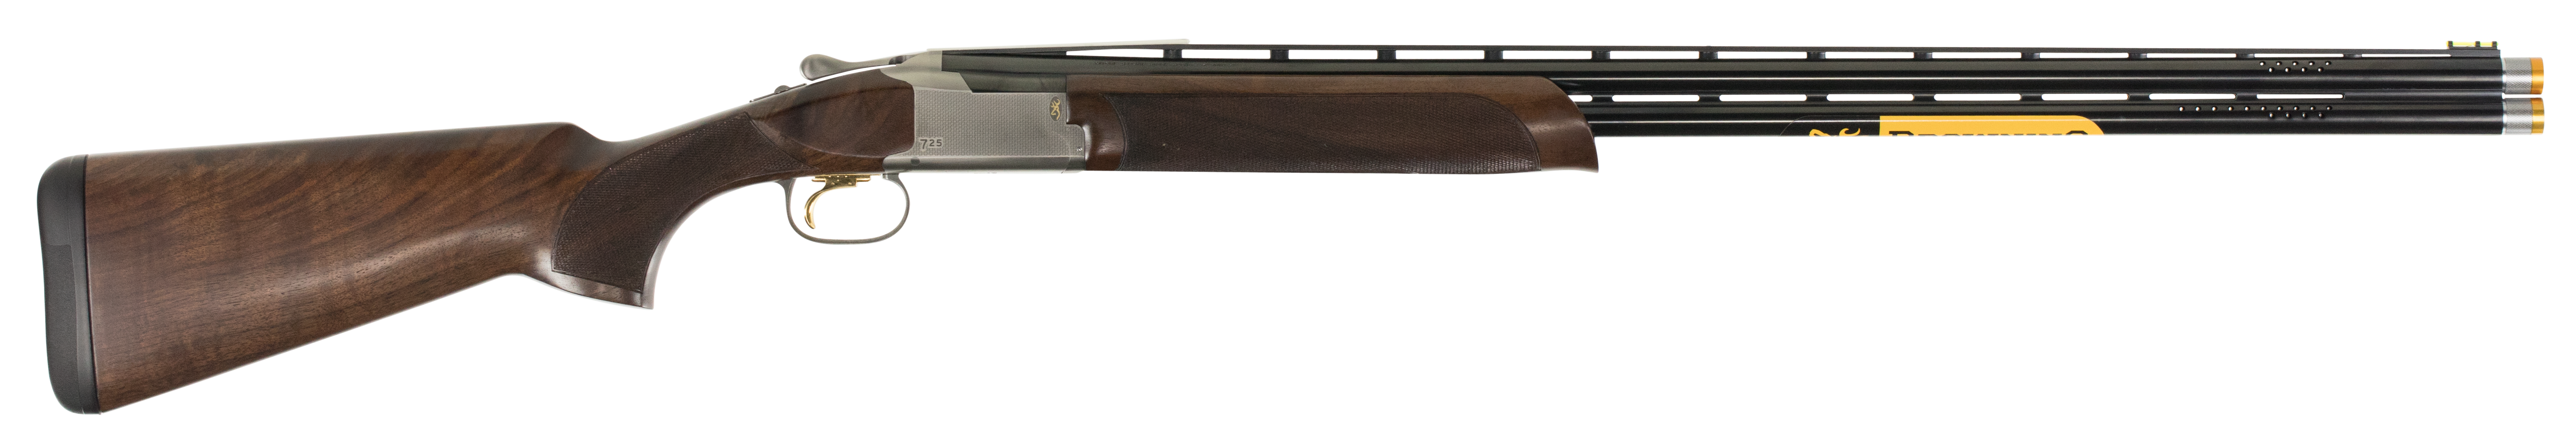 Browning Citori 725 Sporting Over/Under Shotgun 3'' 20 Gauge 30'' Silver Nitride Steel/Blued Barrel - Grade III Gloss/Grade IV Walnut